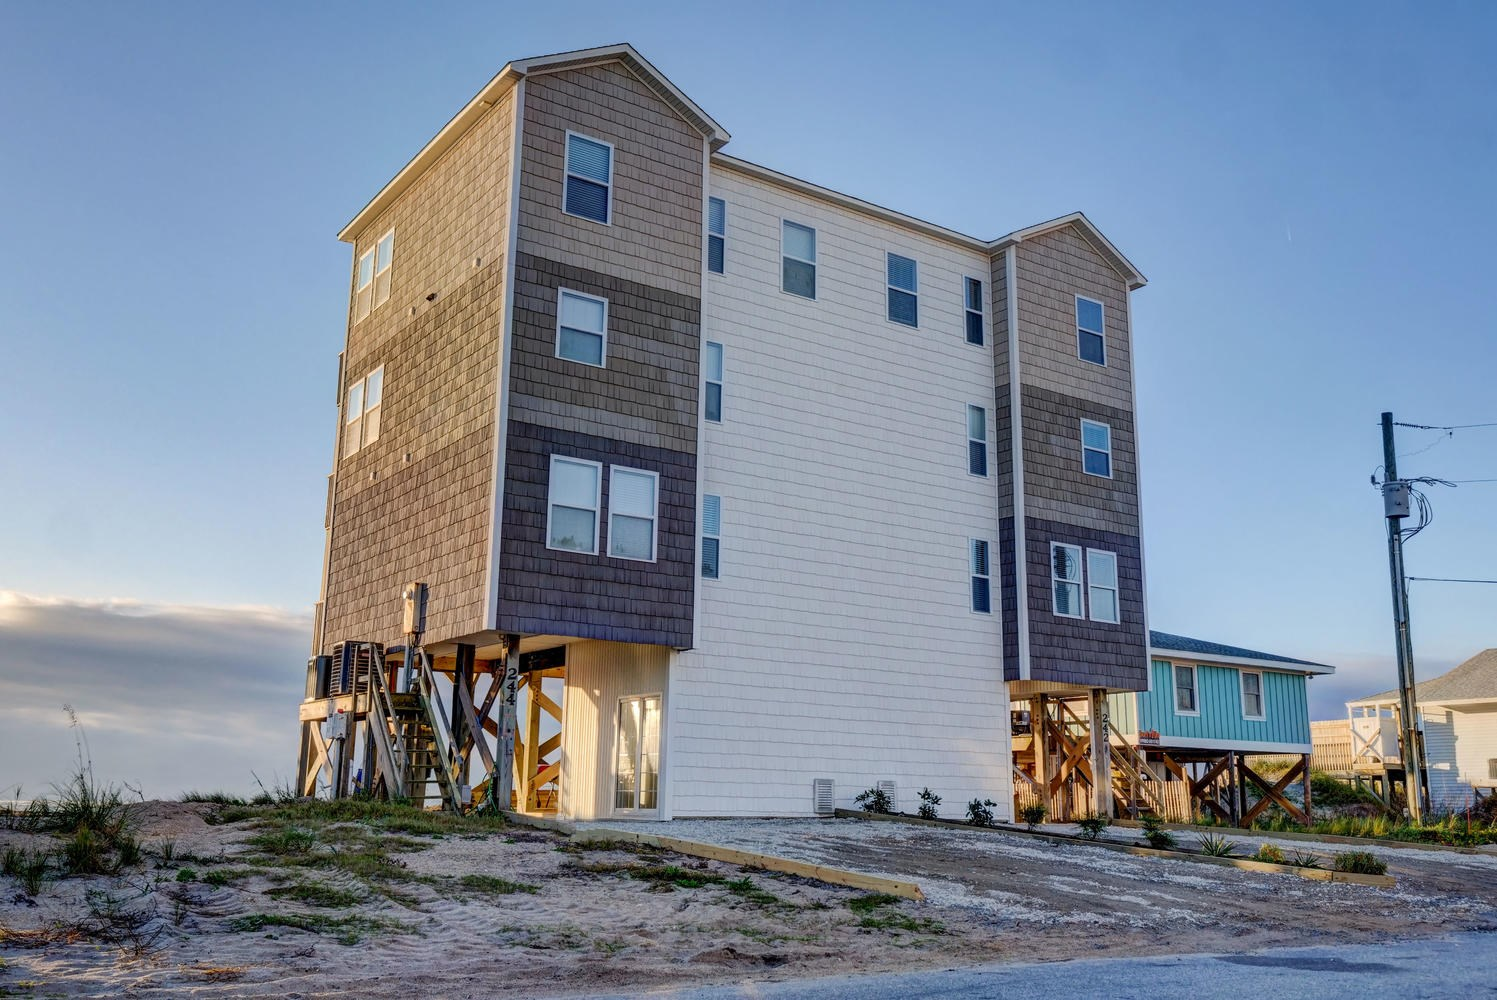 Duplex (Both Sides) For Sale in North Topsail Beach